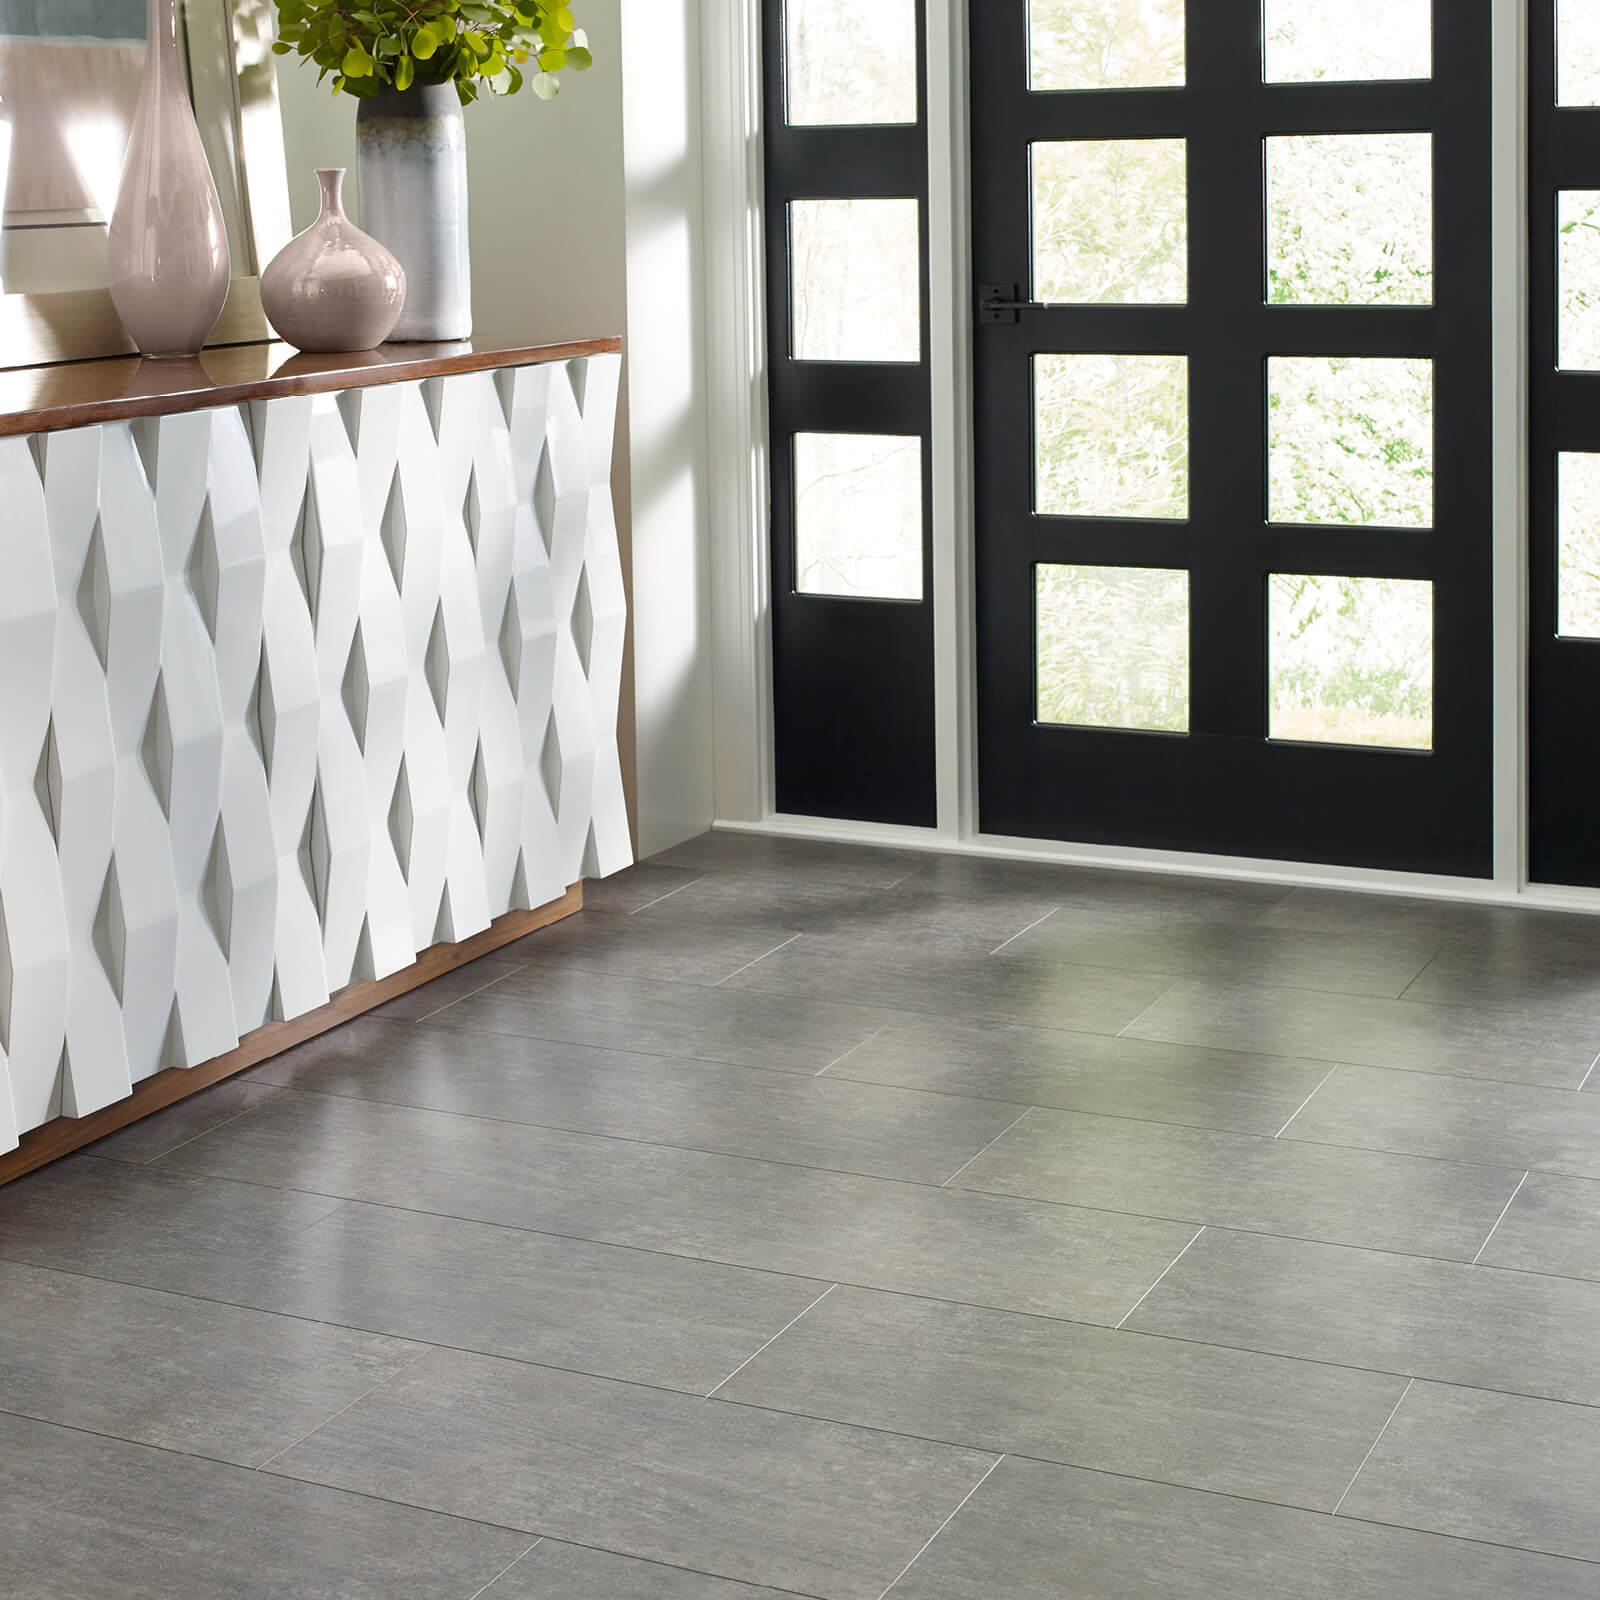 Luxury vinyl flooring | Flooring By Design